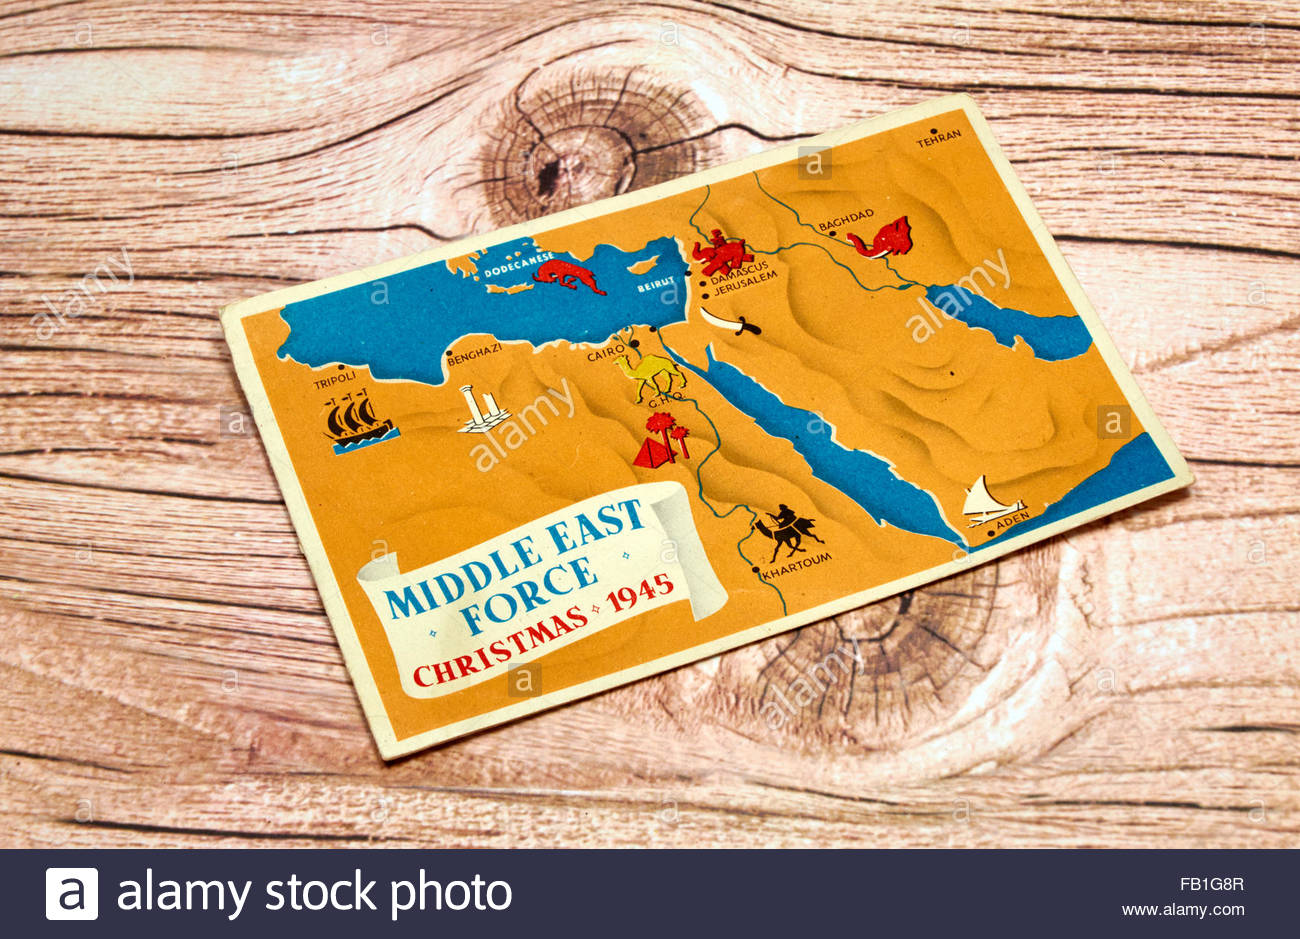 Tehran Middle East Map.A 1945 Middle East Forces Christmas Card Showing A Map Of Egypt